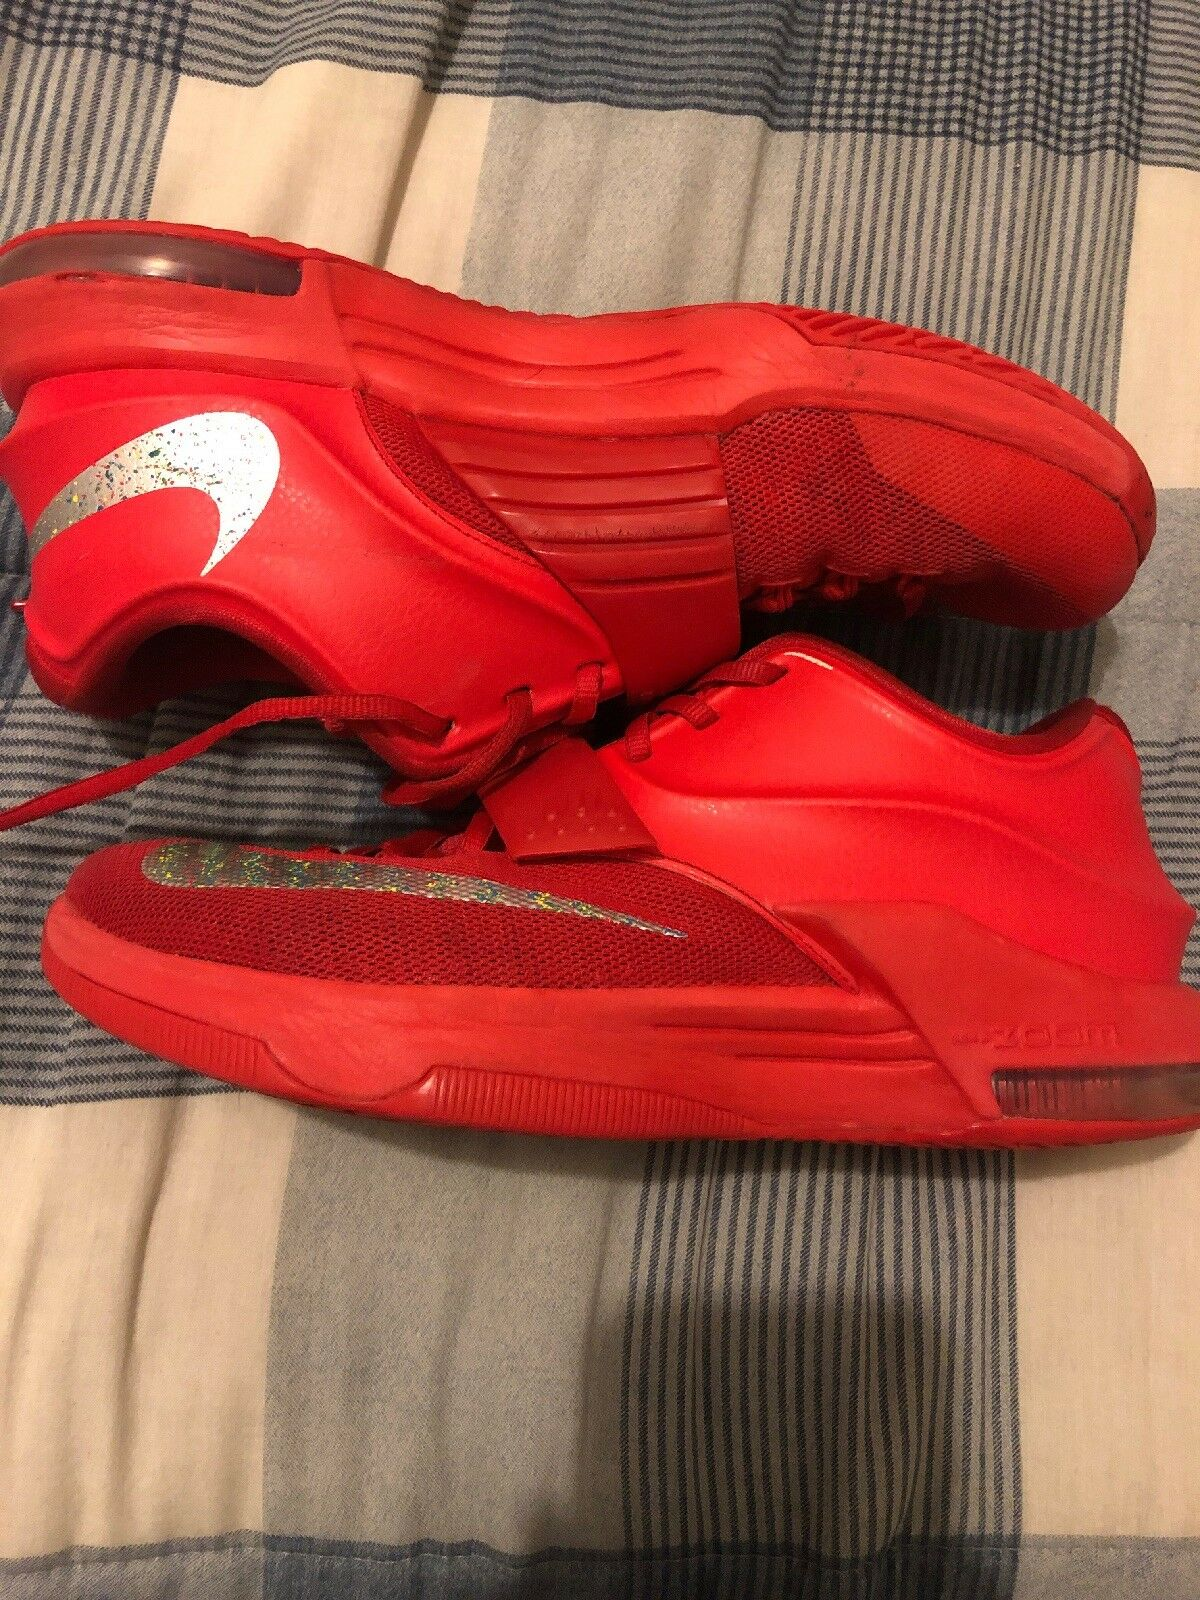 Pre owned mens nike kd 7 global games size 9 red